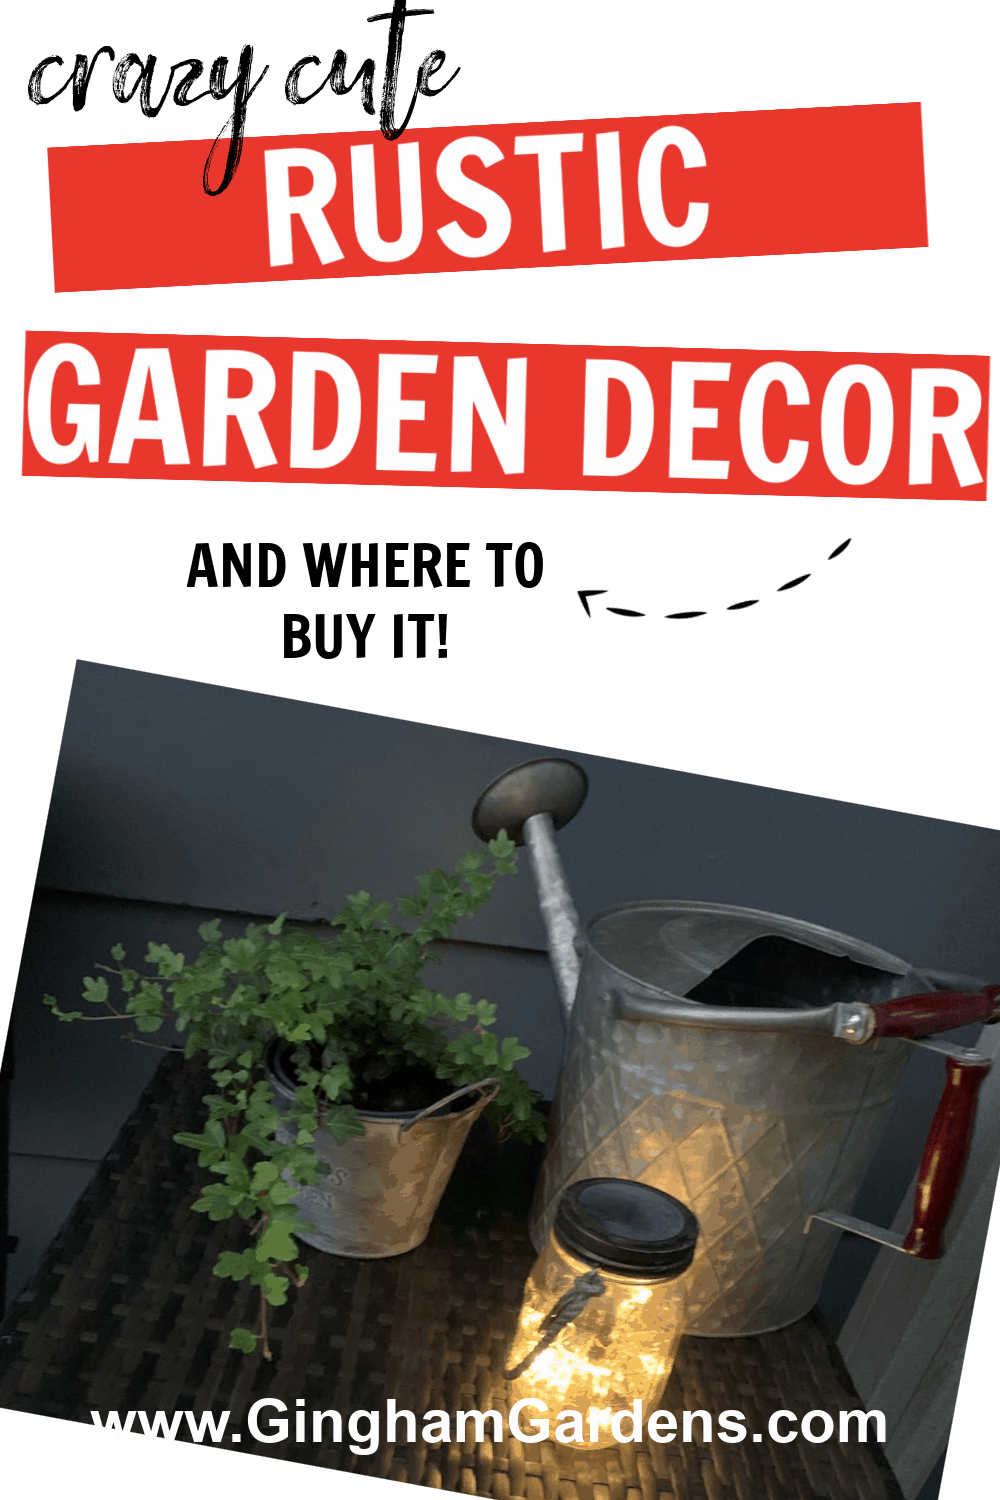 Image of rustic garden decor with text overlay - Crazy cute Rustic Garden Decor and where to buy it